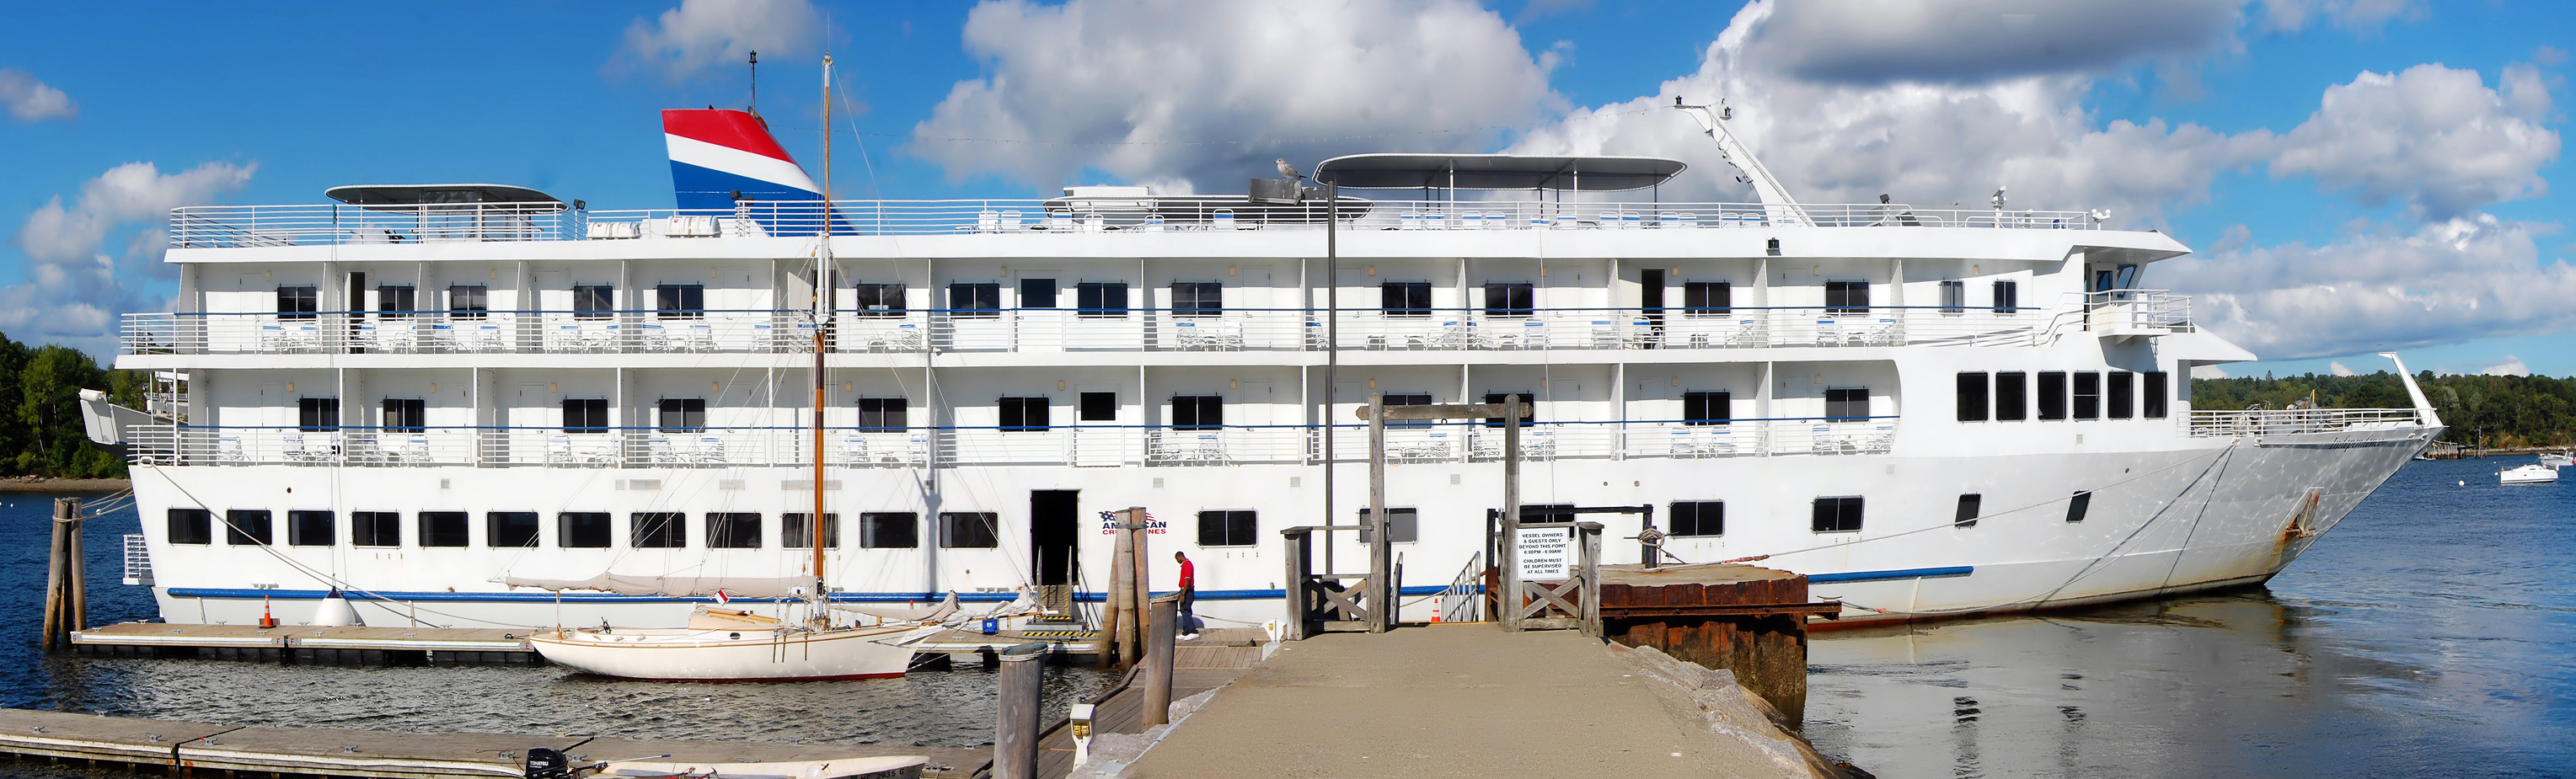 File:MS Indpendence (American Cruise Lines).jpg - Wikimedia Commons